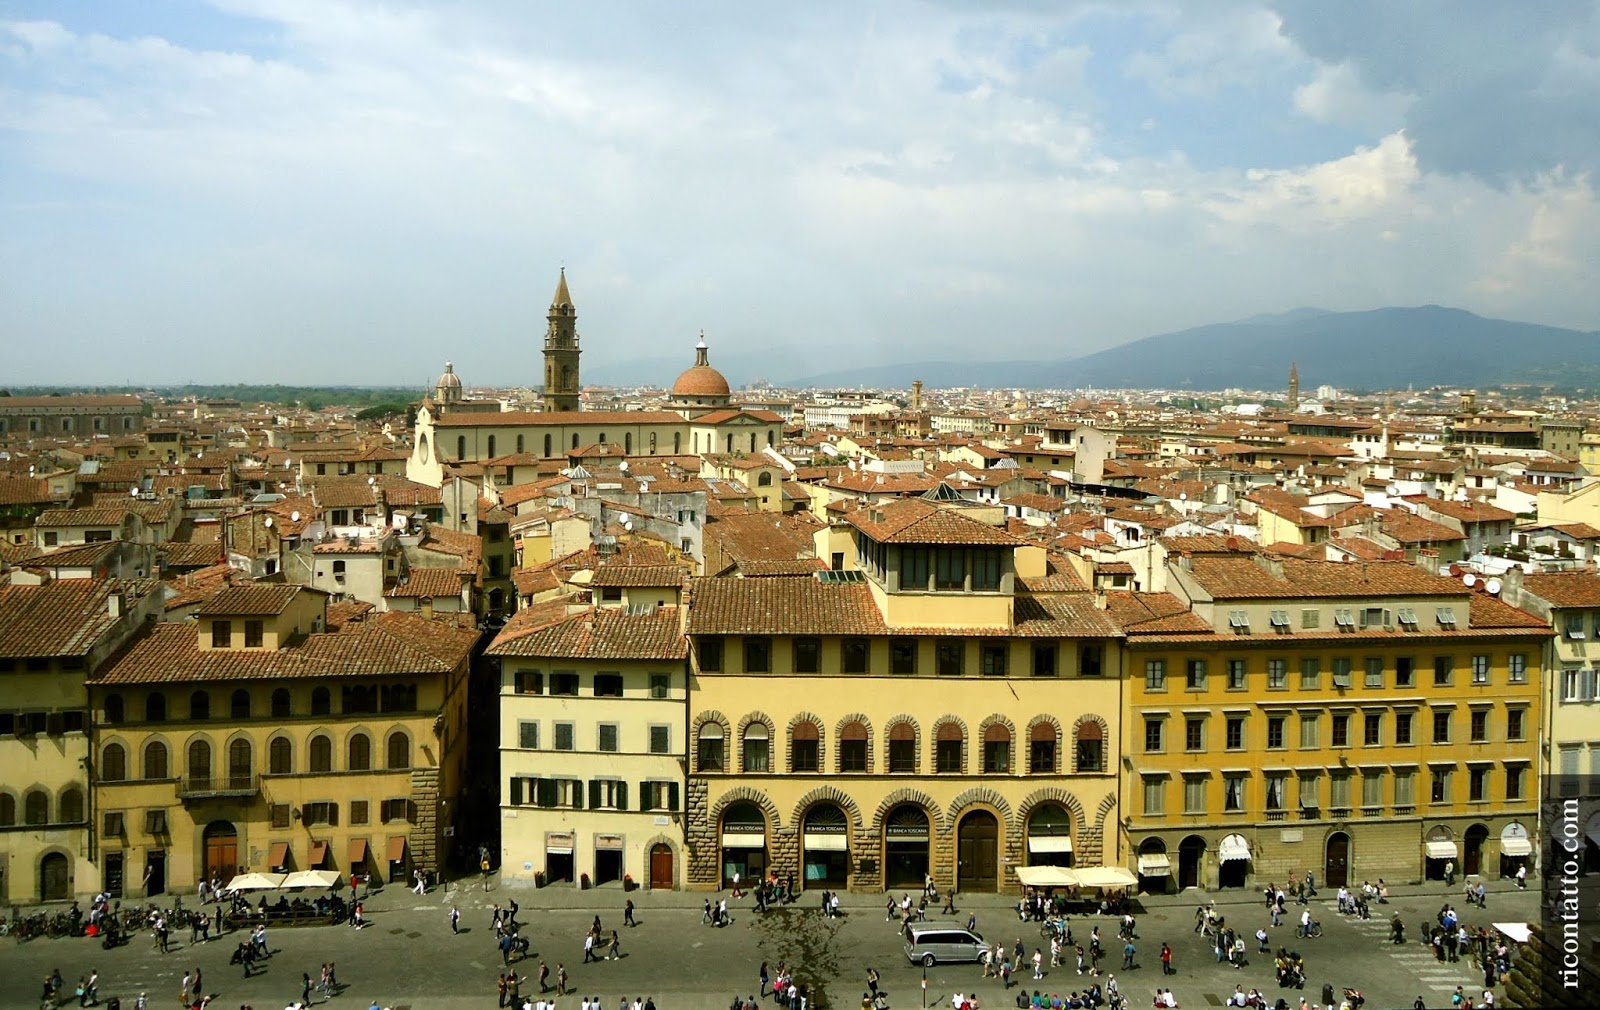 Firenze, Toscana, Italy - Photo #01 by Ricontatto.com